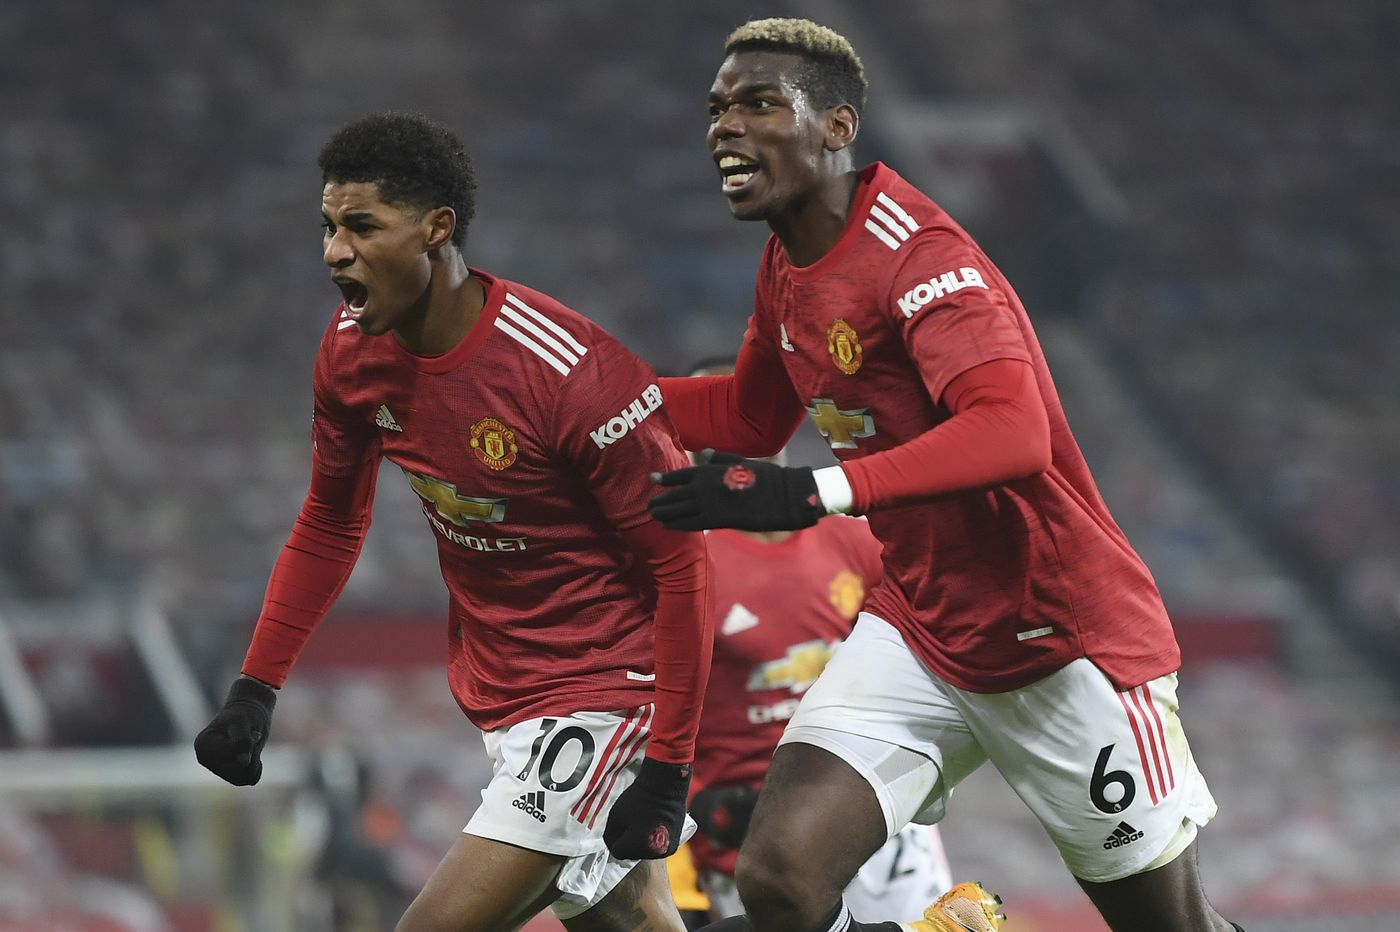 Soccer on TV: Manchester United is one win from the top of the Premier League